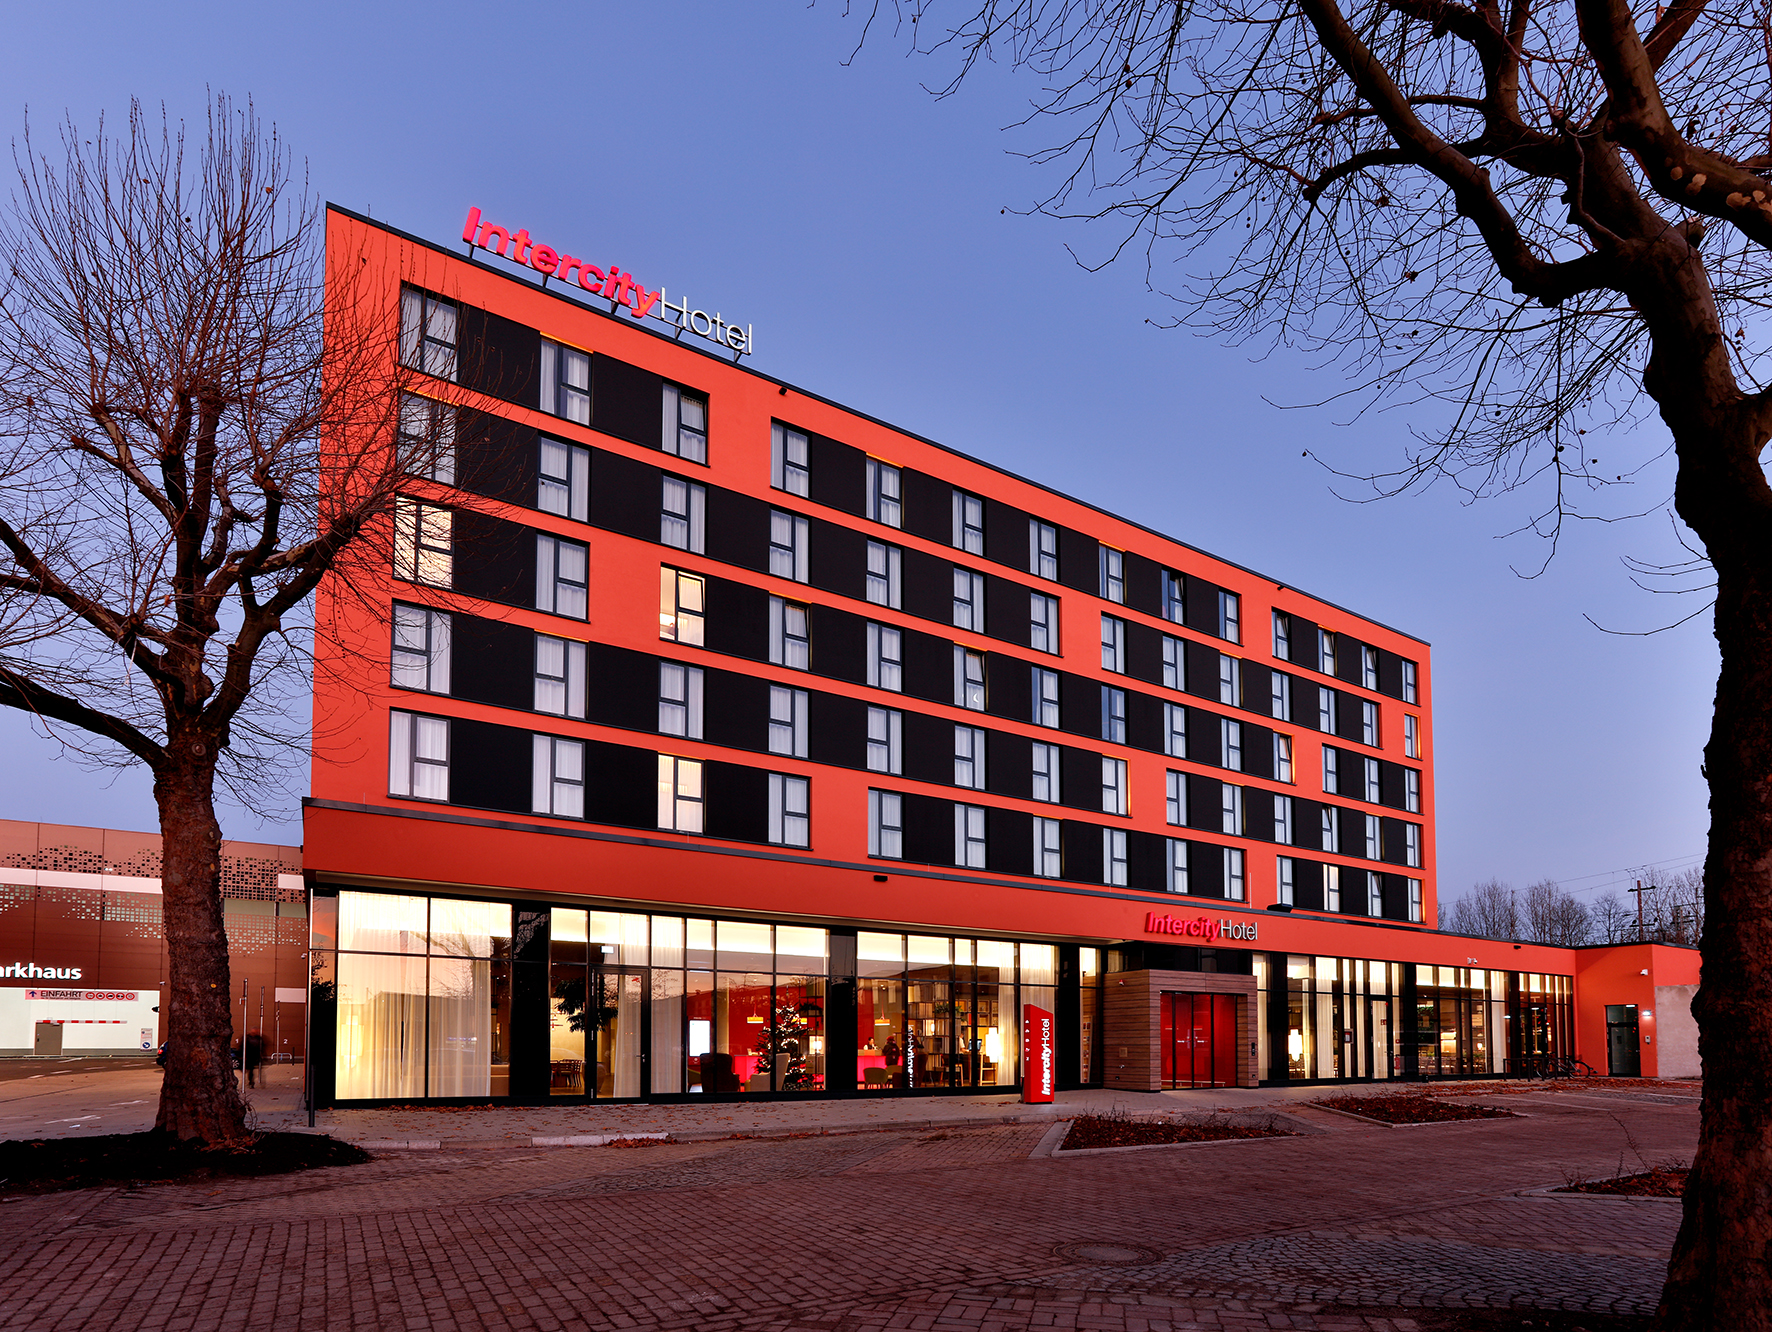 The IntercityHotel Brunswick is one of 42 upper middle class hotels which IntercityHotel GmbH operates as a subsidiary of Frankfurt-based Steigenberger Hotels AG worldwide.